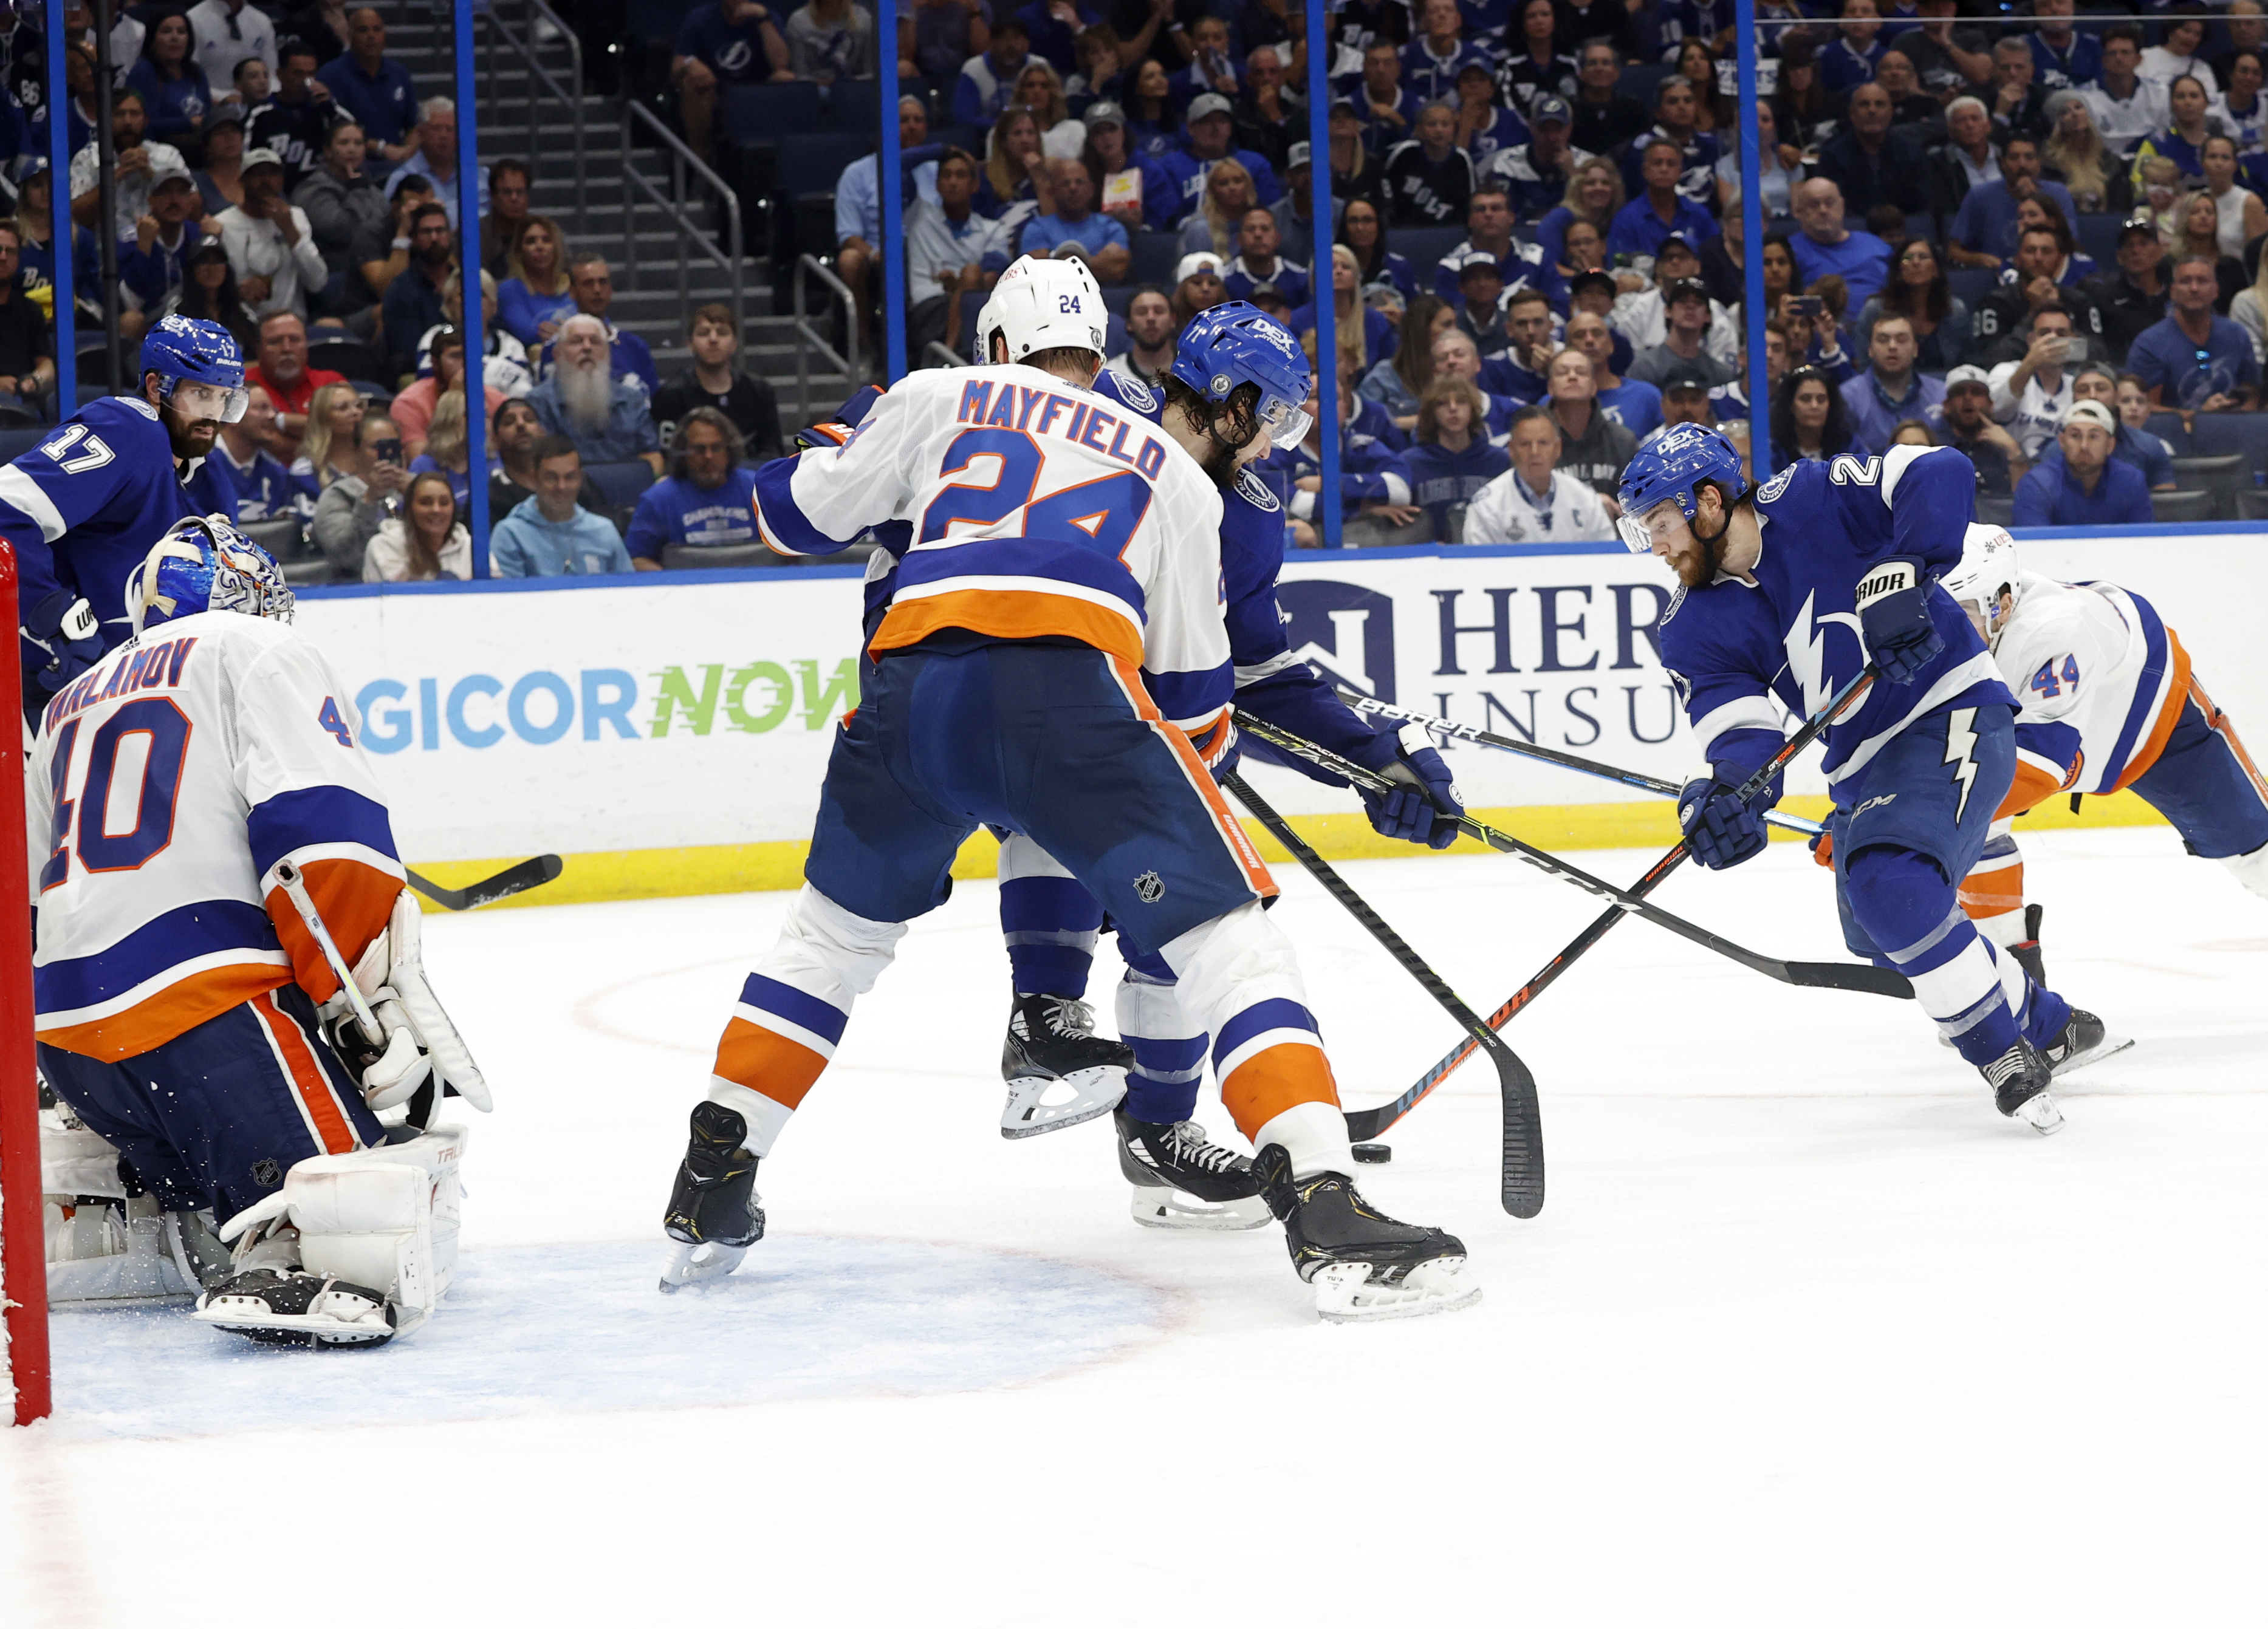 Tampa Bay Lightning center Brayden Point (21) skates and scores a goal on New York Islanders goaltender Semyon Varlamov (40) during the third period in game one of the 2021 Stanley Cup Semifinals at Amalie Arena.